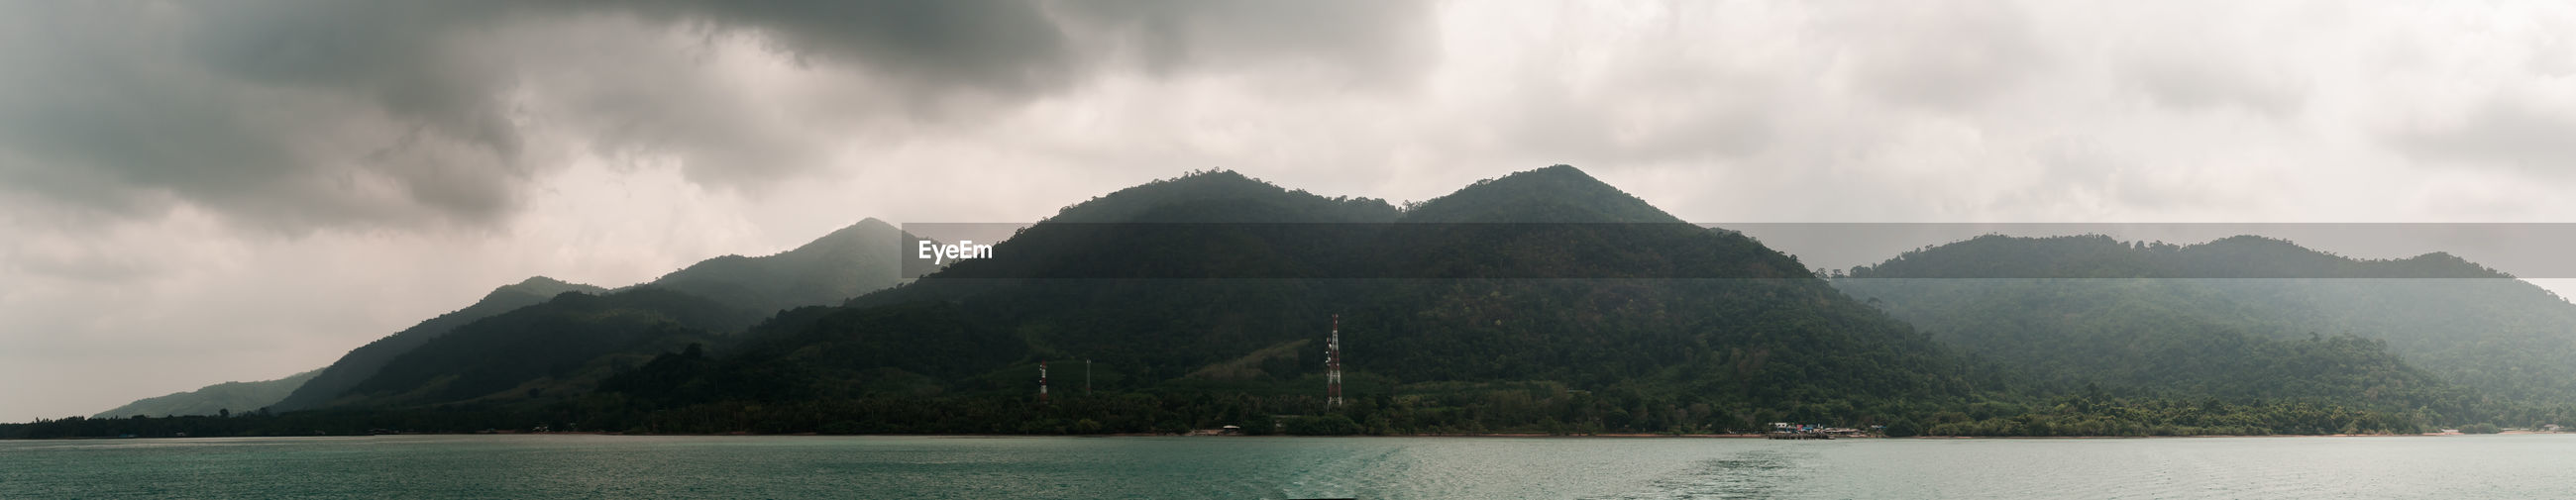 PANORAMIC VIEW OF SEA AGAINST MOUNTAINS